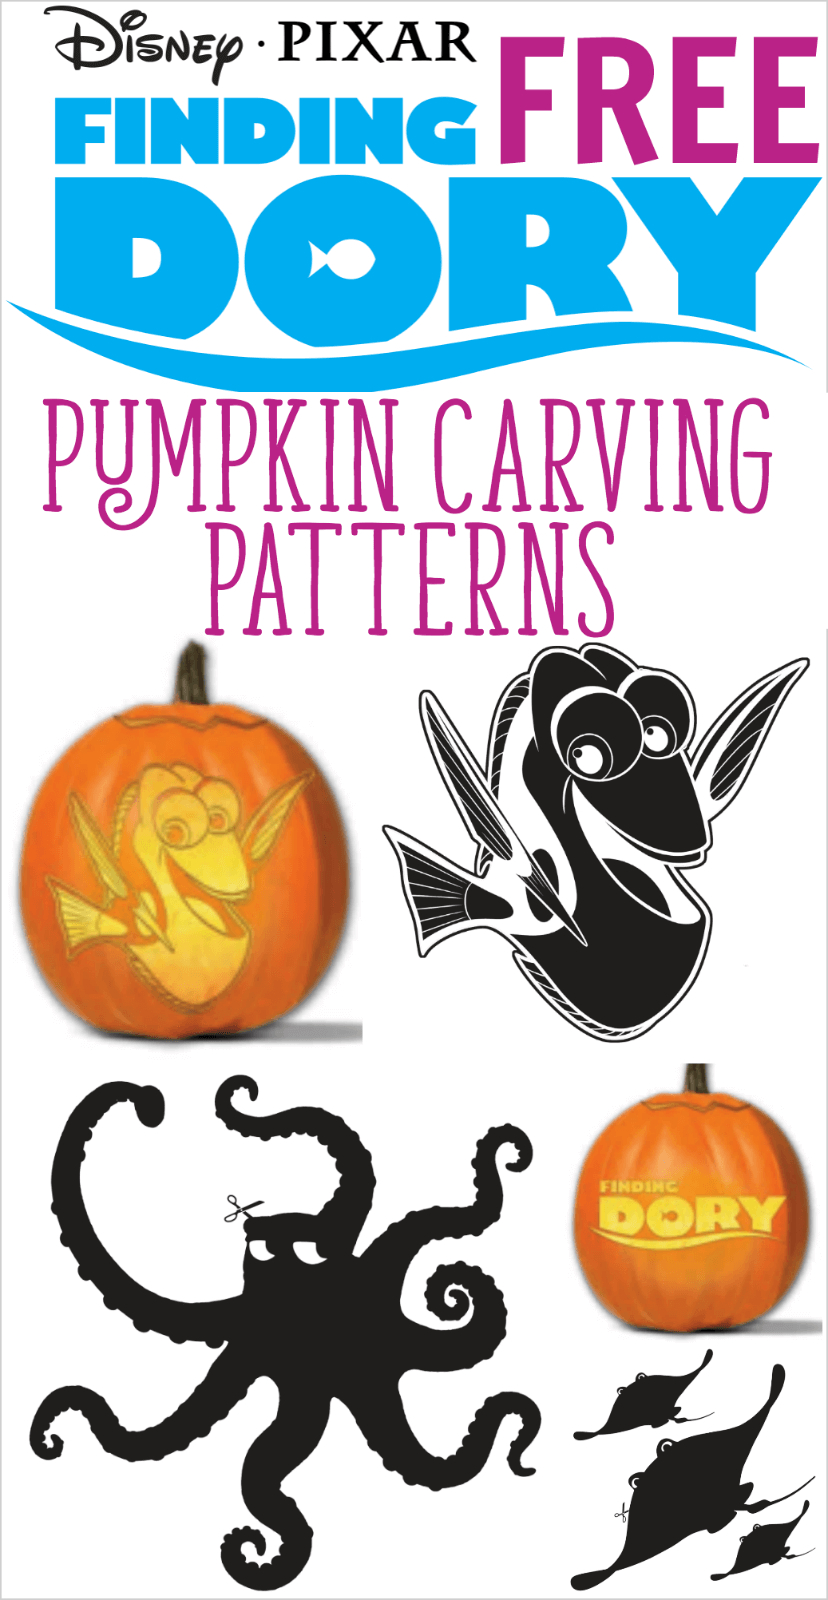 Free Finding Dory Pumpkin Carving Patterns To Print! | All Things - Pumpkin Carving Patterns Free Printable